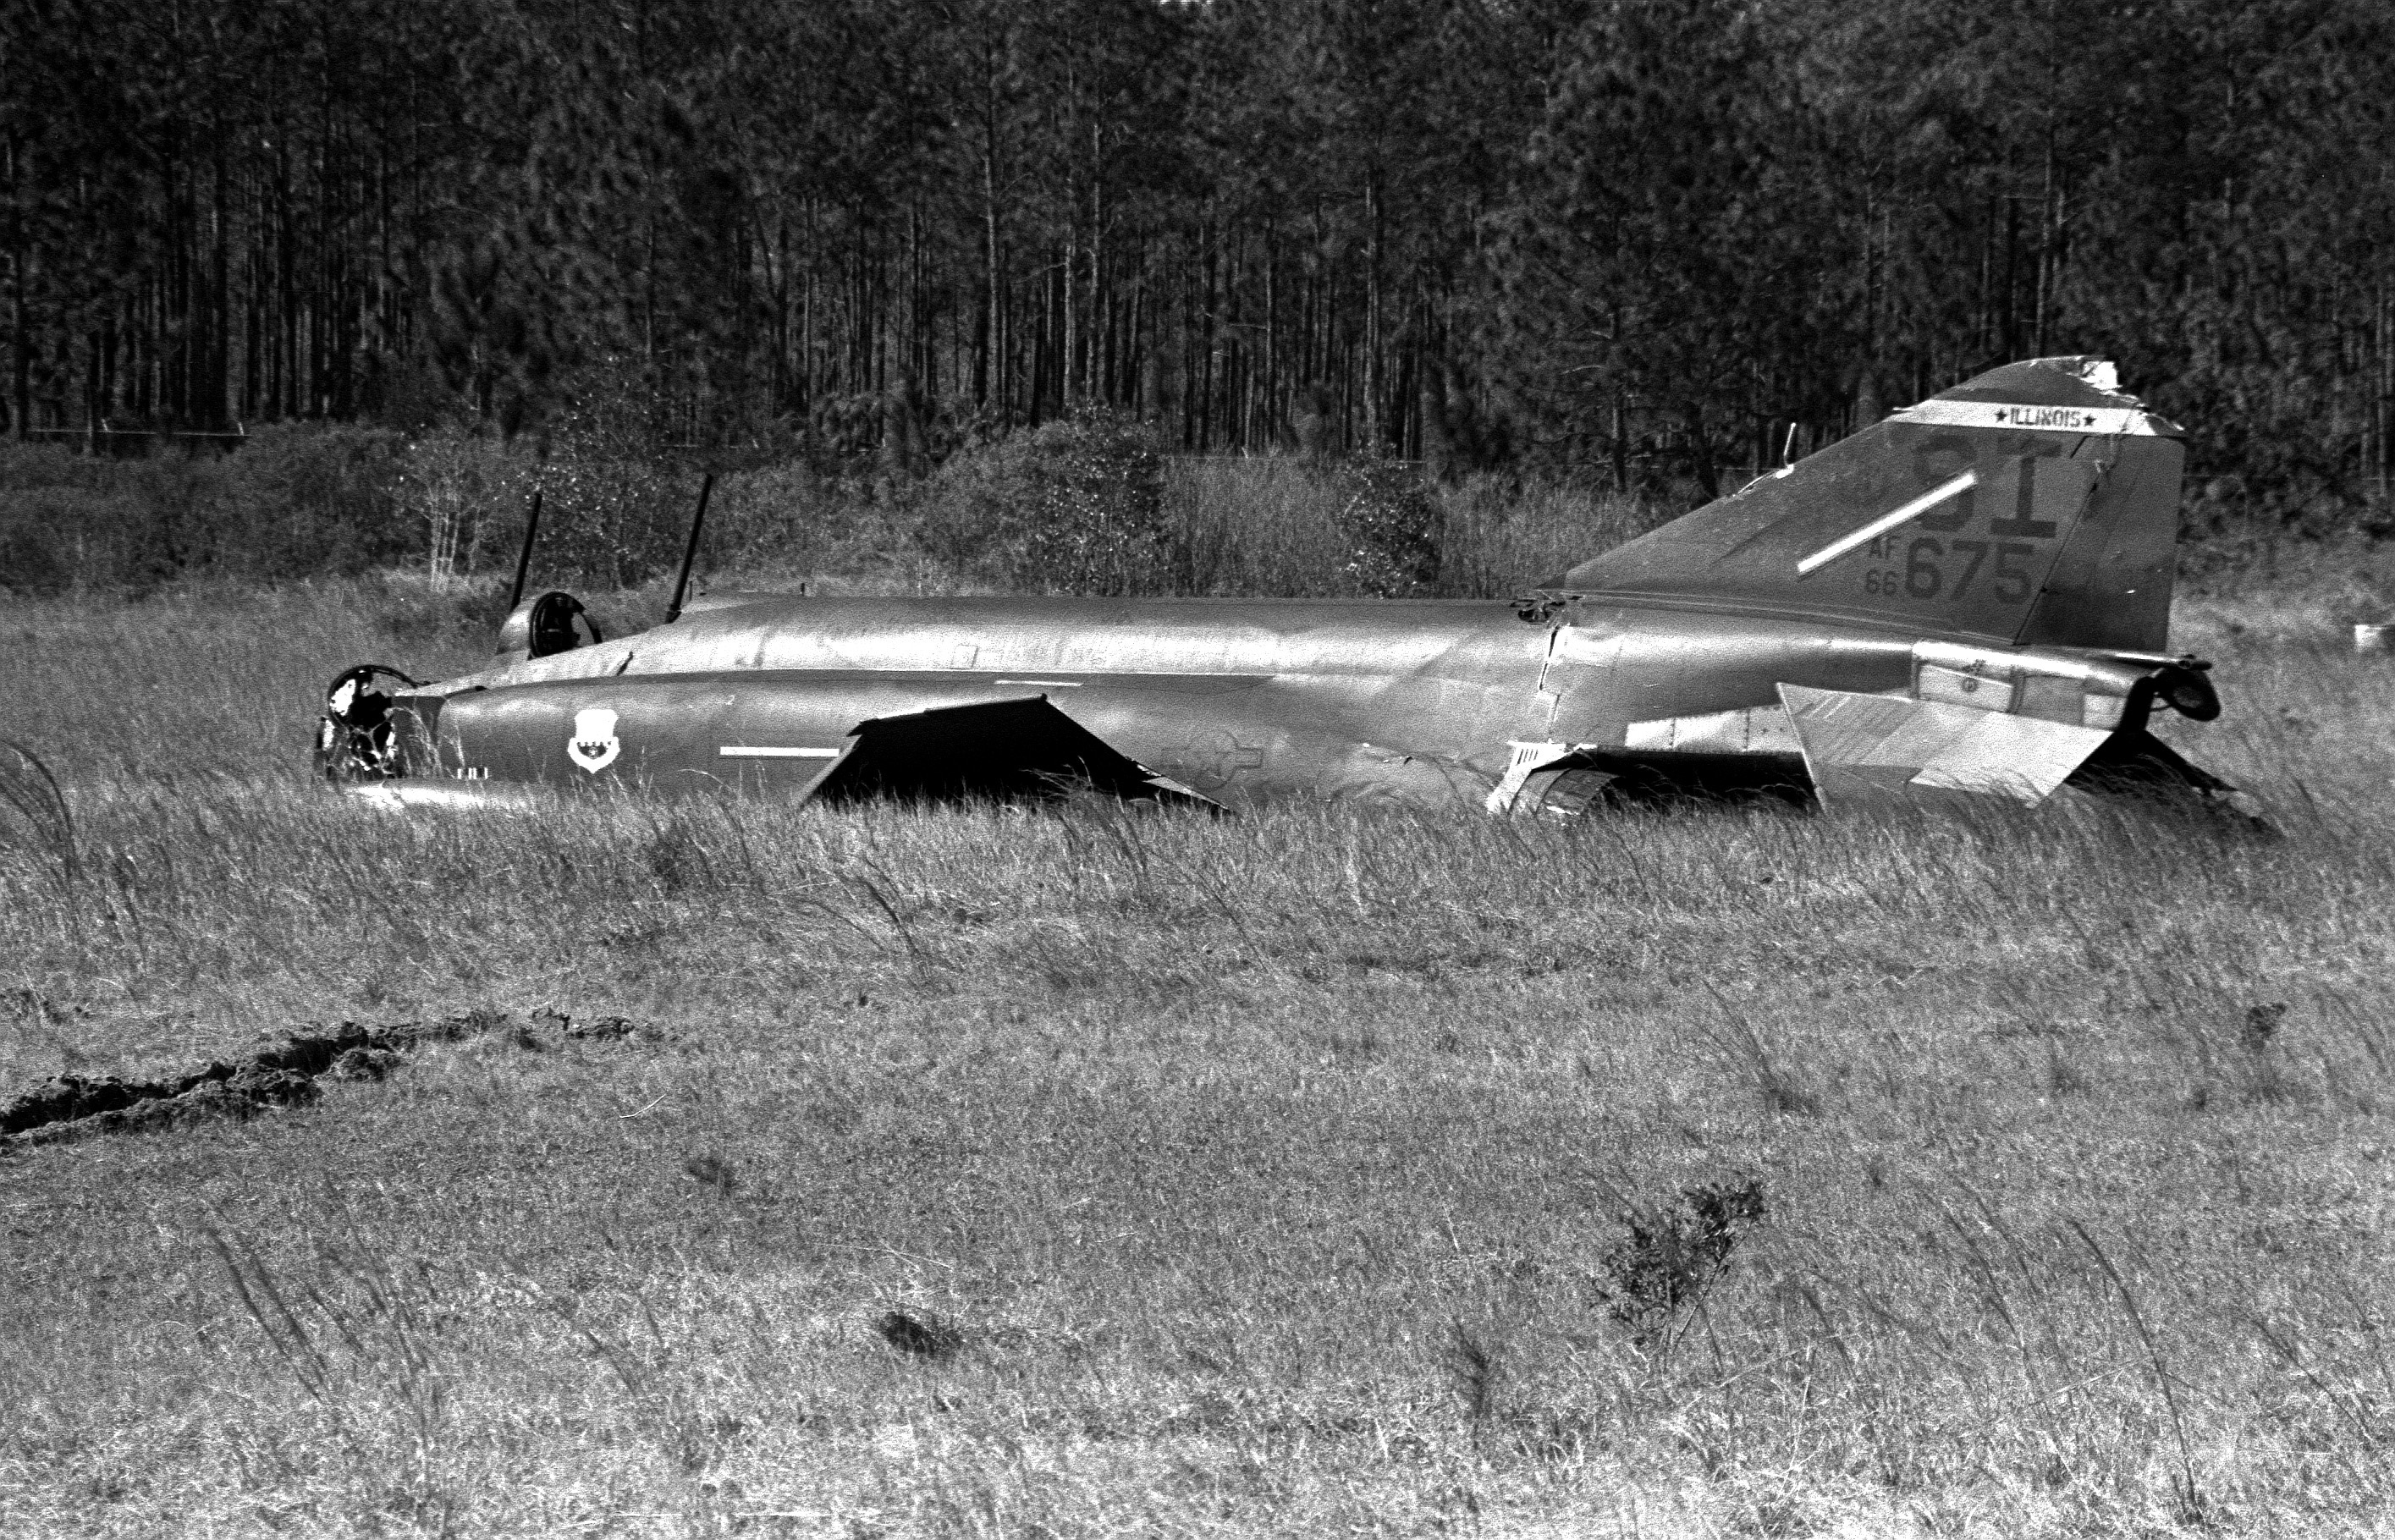 Crashed_Illinois_ANG_F-4D_at_Gulfport_MS_1986.jpeg